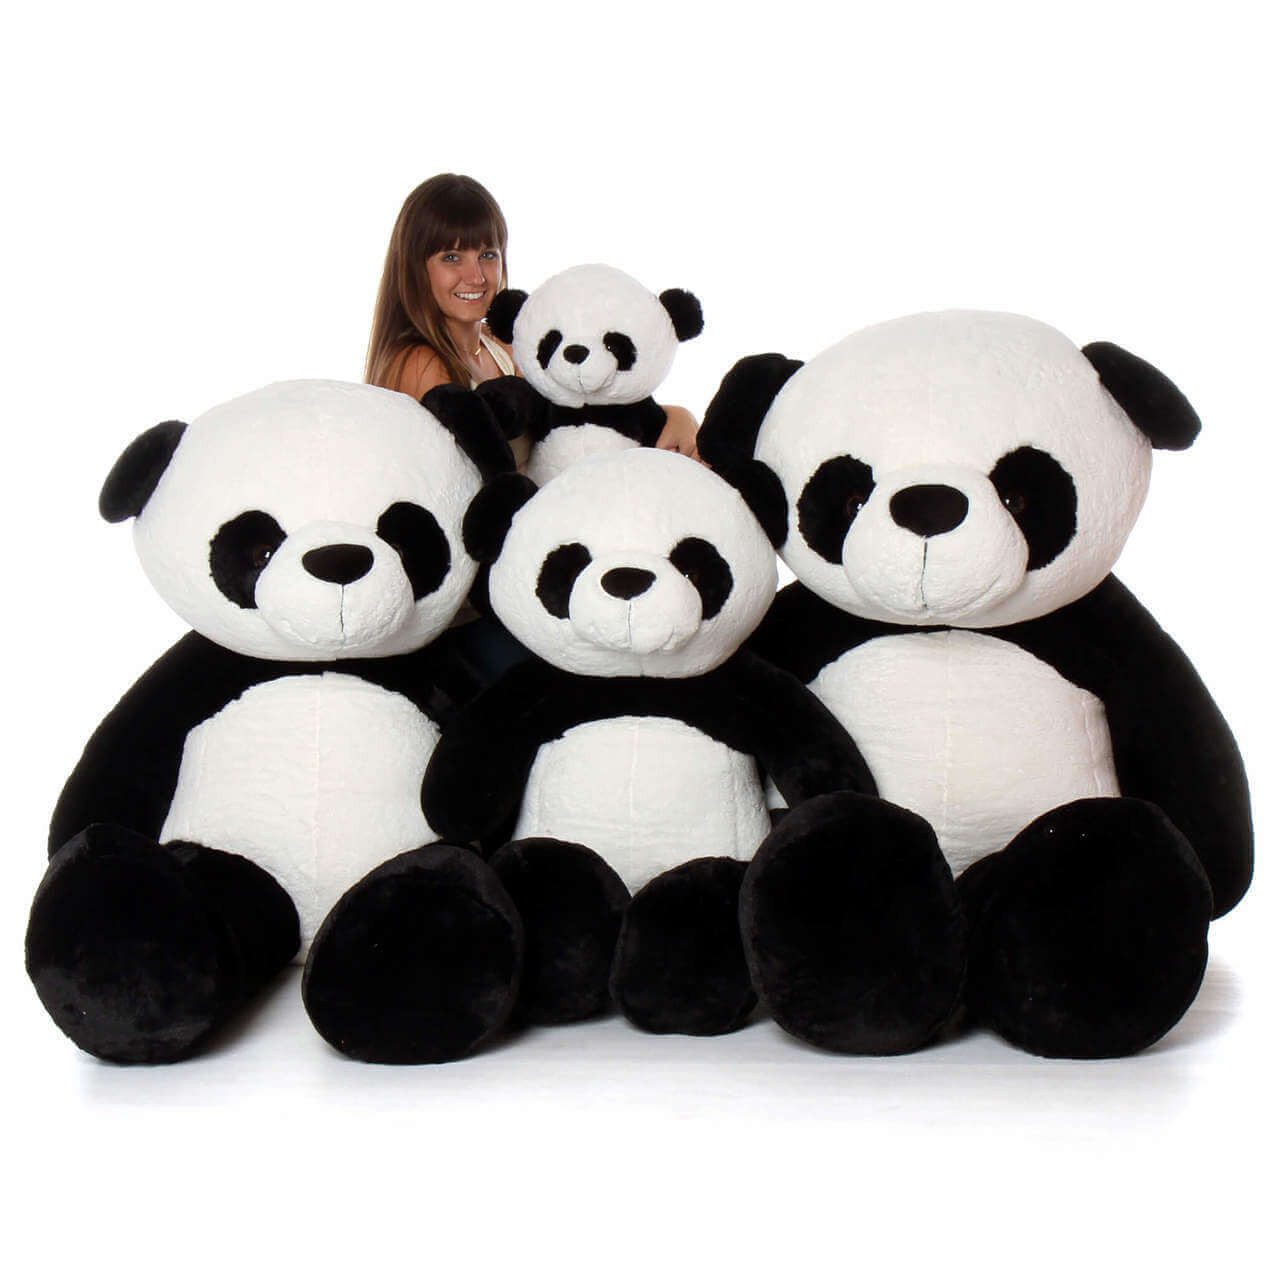 6 Ft Biggest Life Size Panda Teddy Bear Rocky Xiong